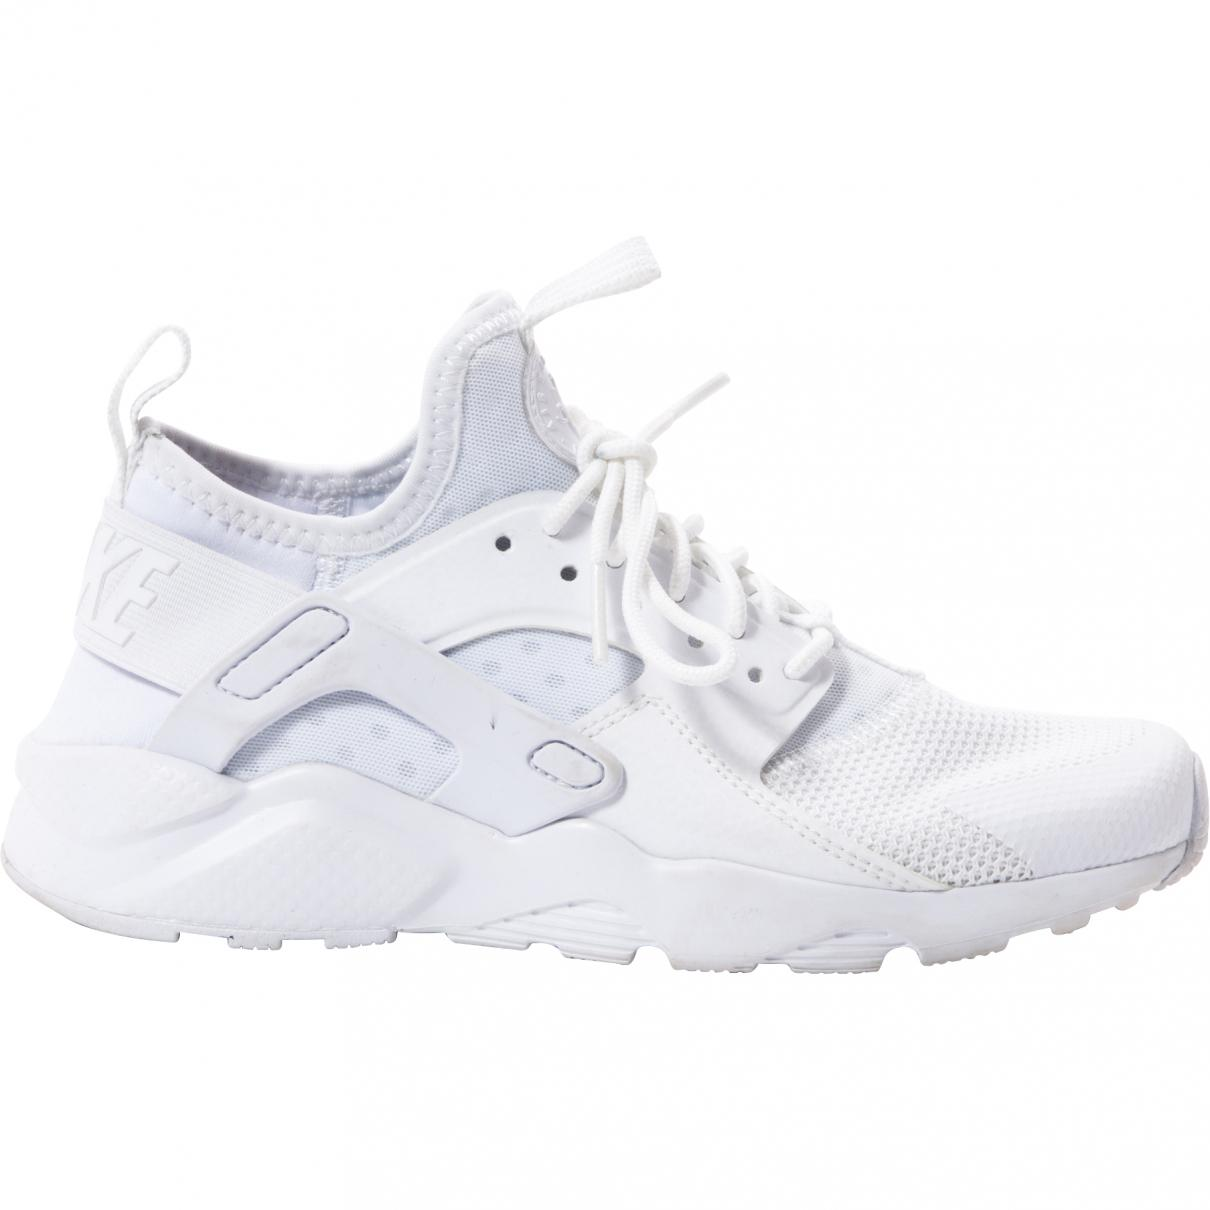 Pre-owned - Huarache leather trainers Nike 2voDf